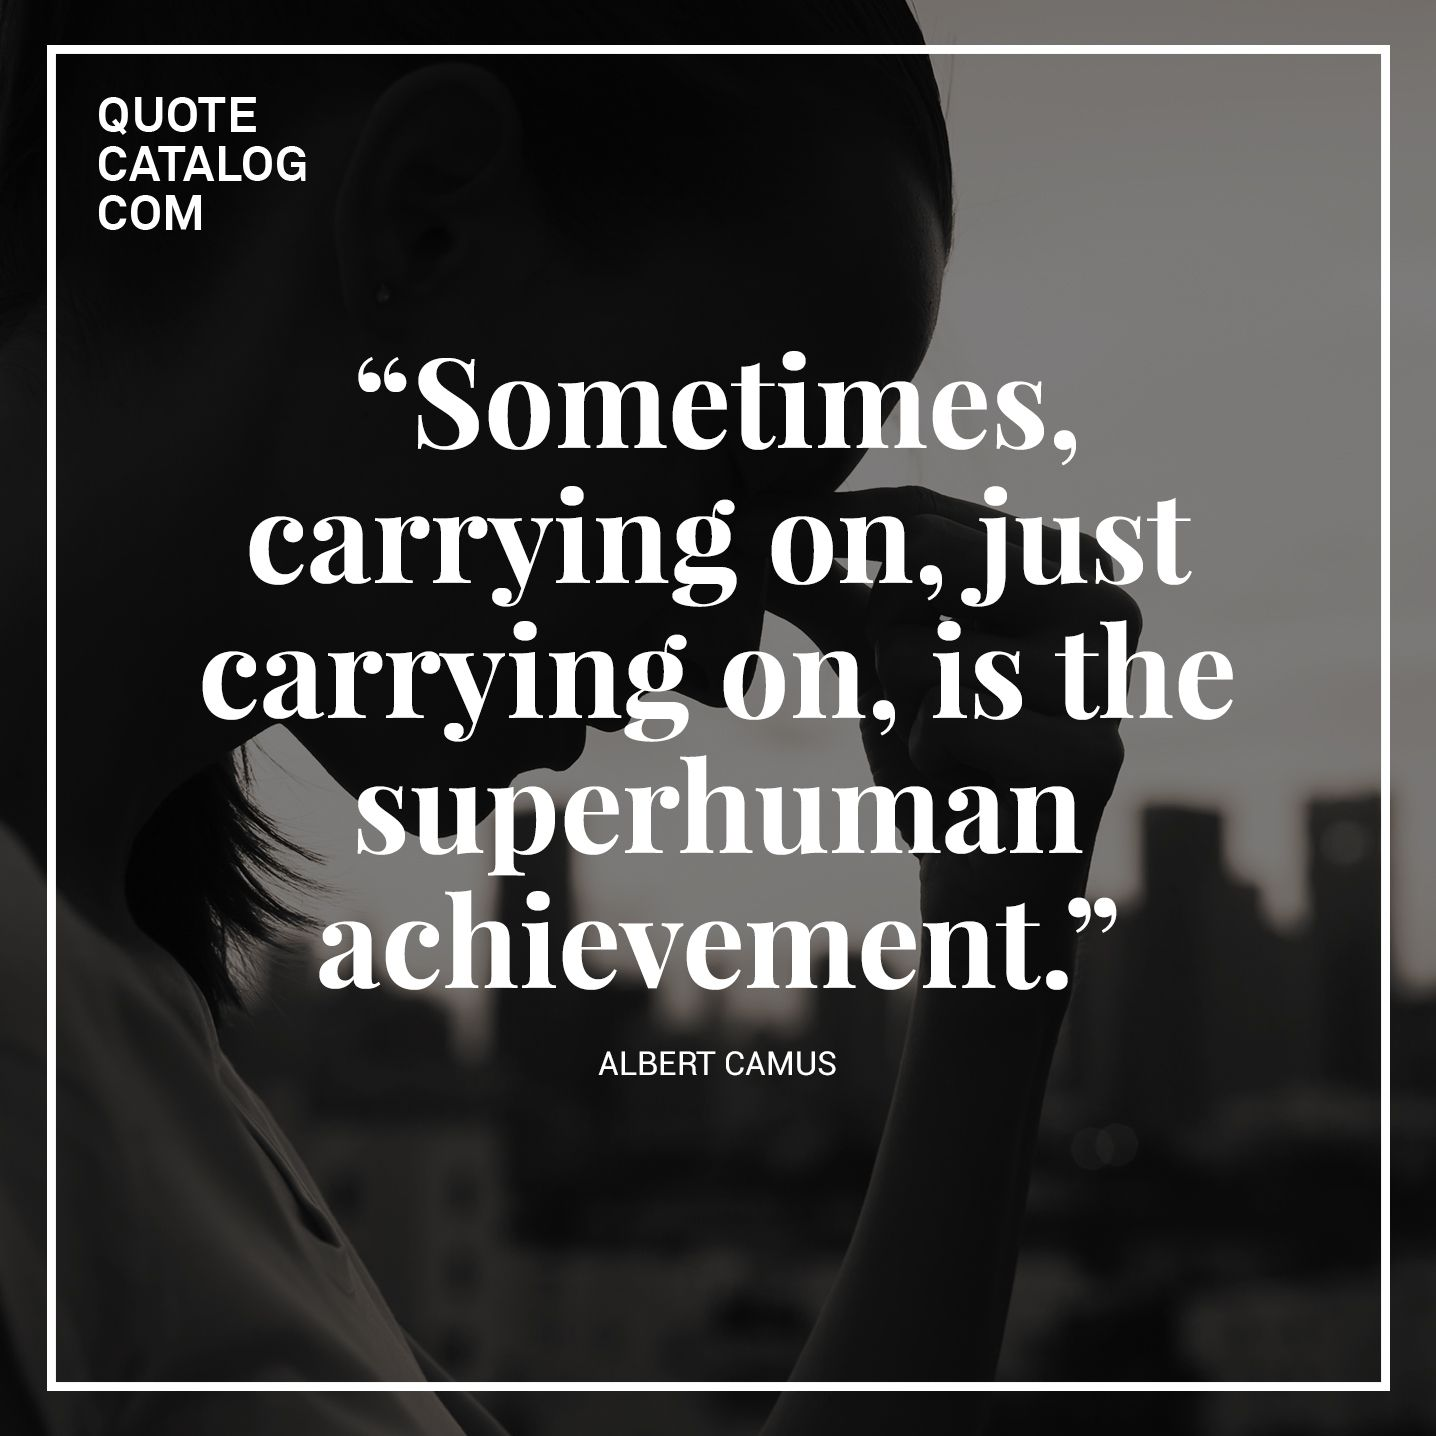 Albert Camus Quotes Mesmerizing Sometimes Carrying On Just Carrying On Is The Superhuman